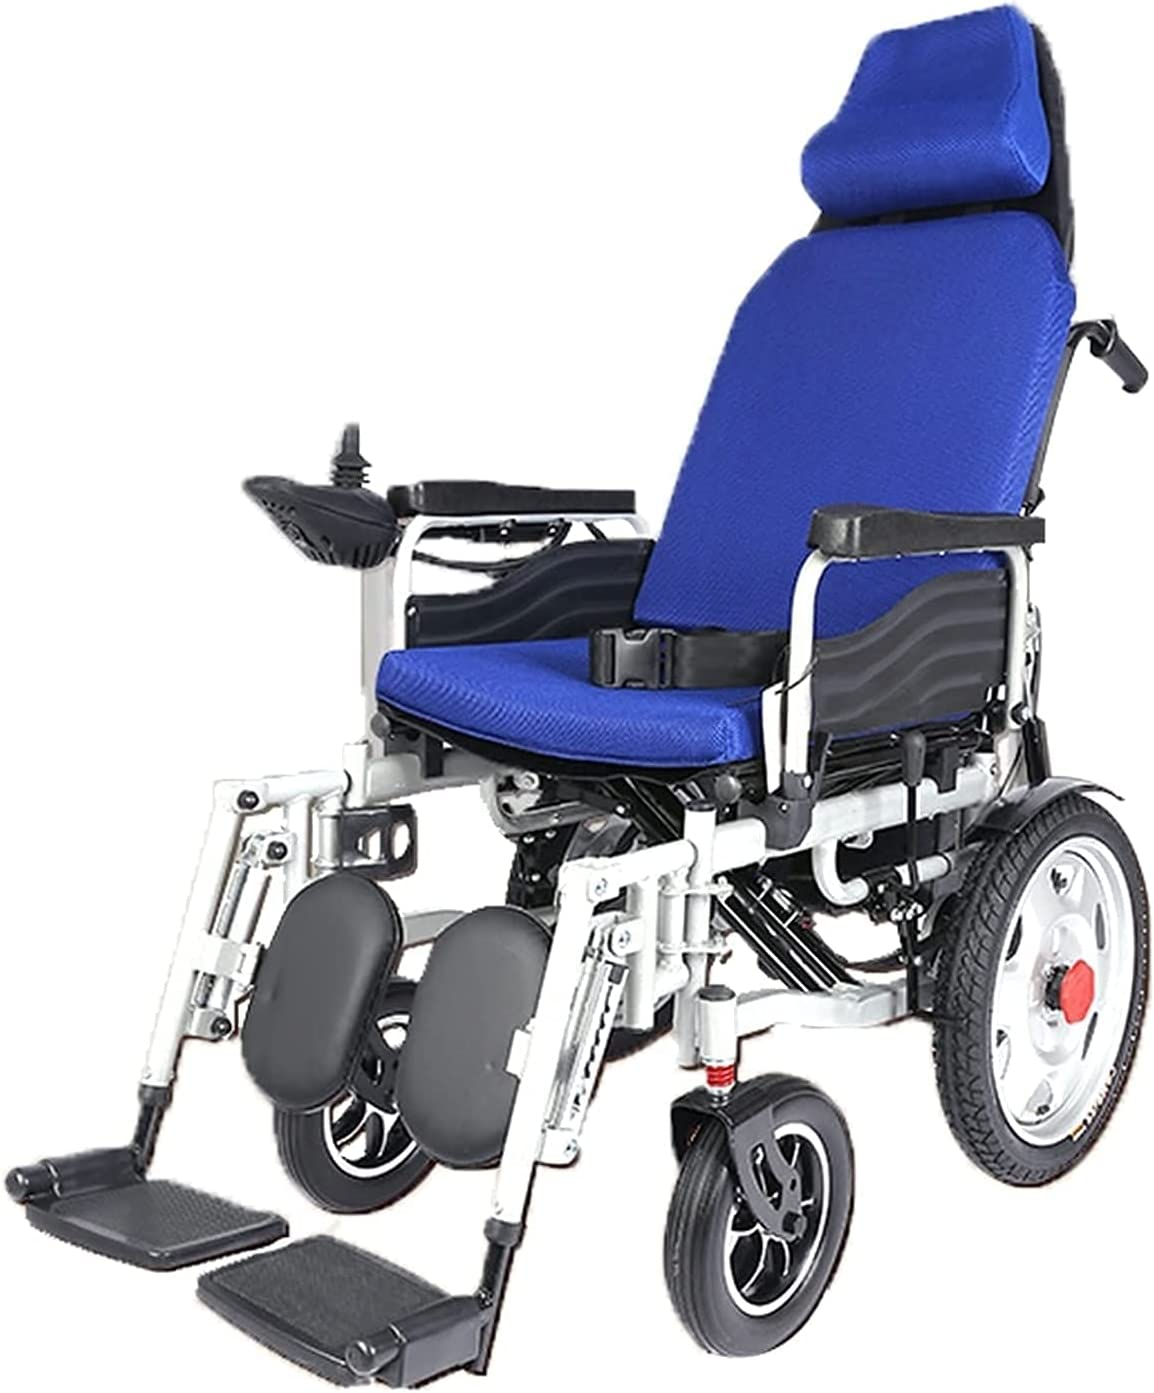 Four-Wheeled New products, world's highest quality popular! Max 60% OFF Scooter with Headrest Universal Wheelchair Electric